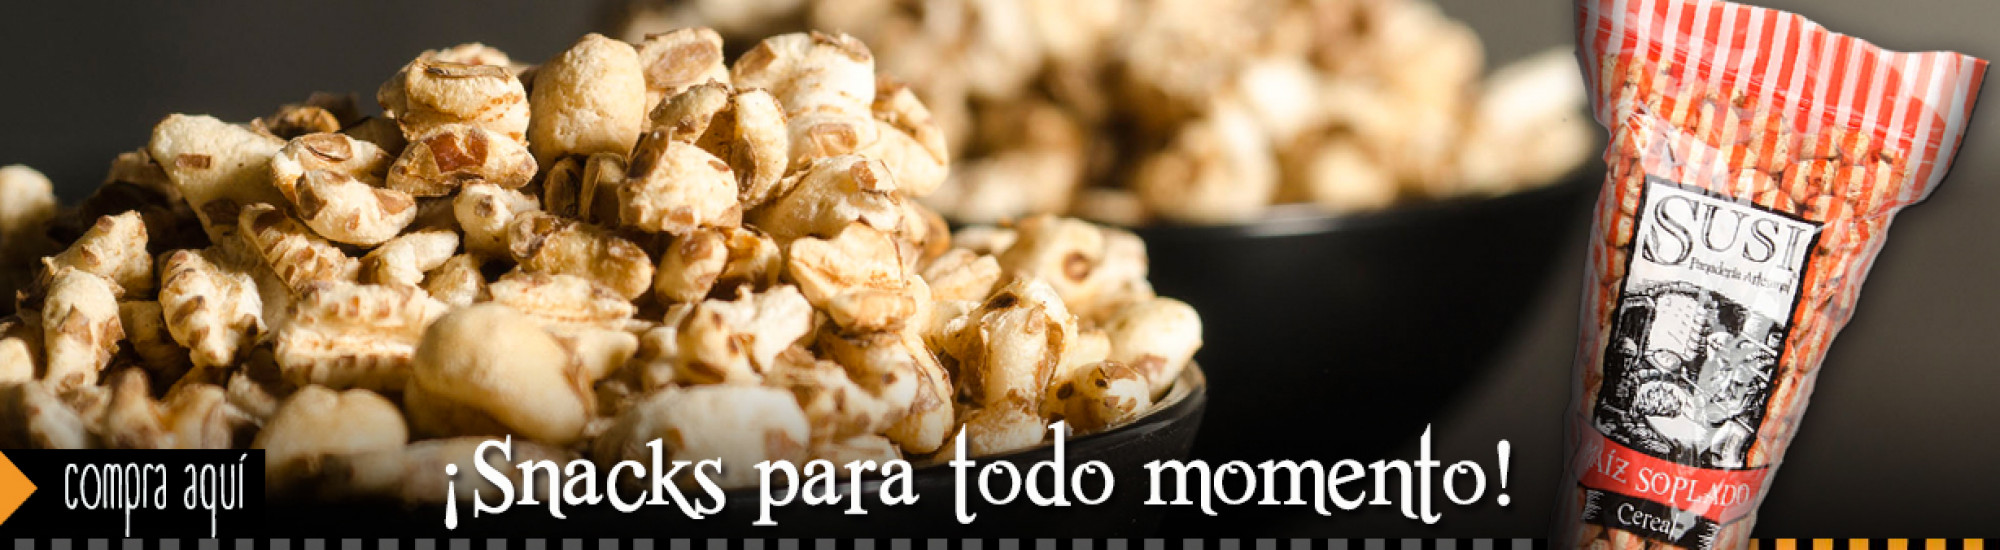 http://www.coordiutil.com/store/reposteriasusi/categoria-snacks_saludables-snacks_saludables?categorias=snacks_soplados